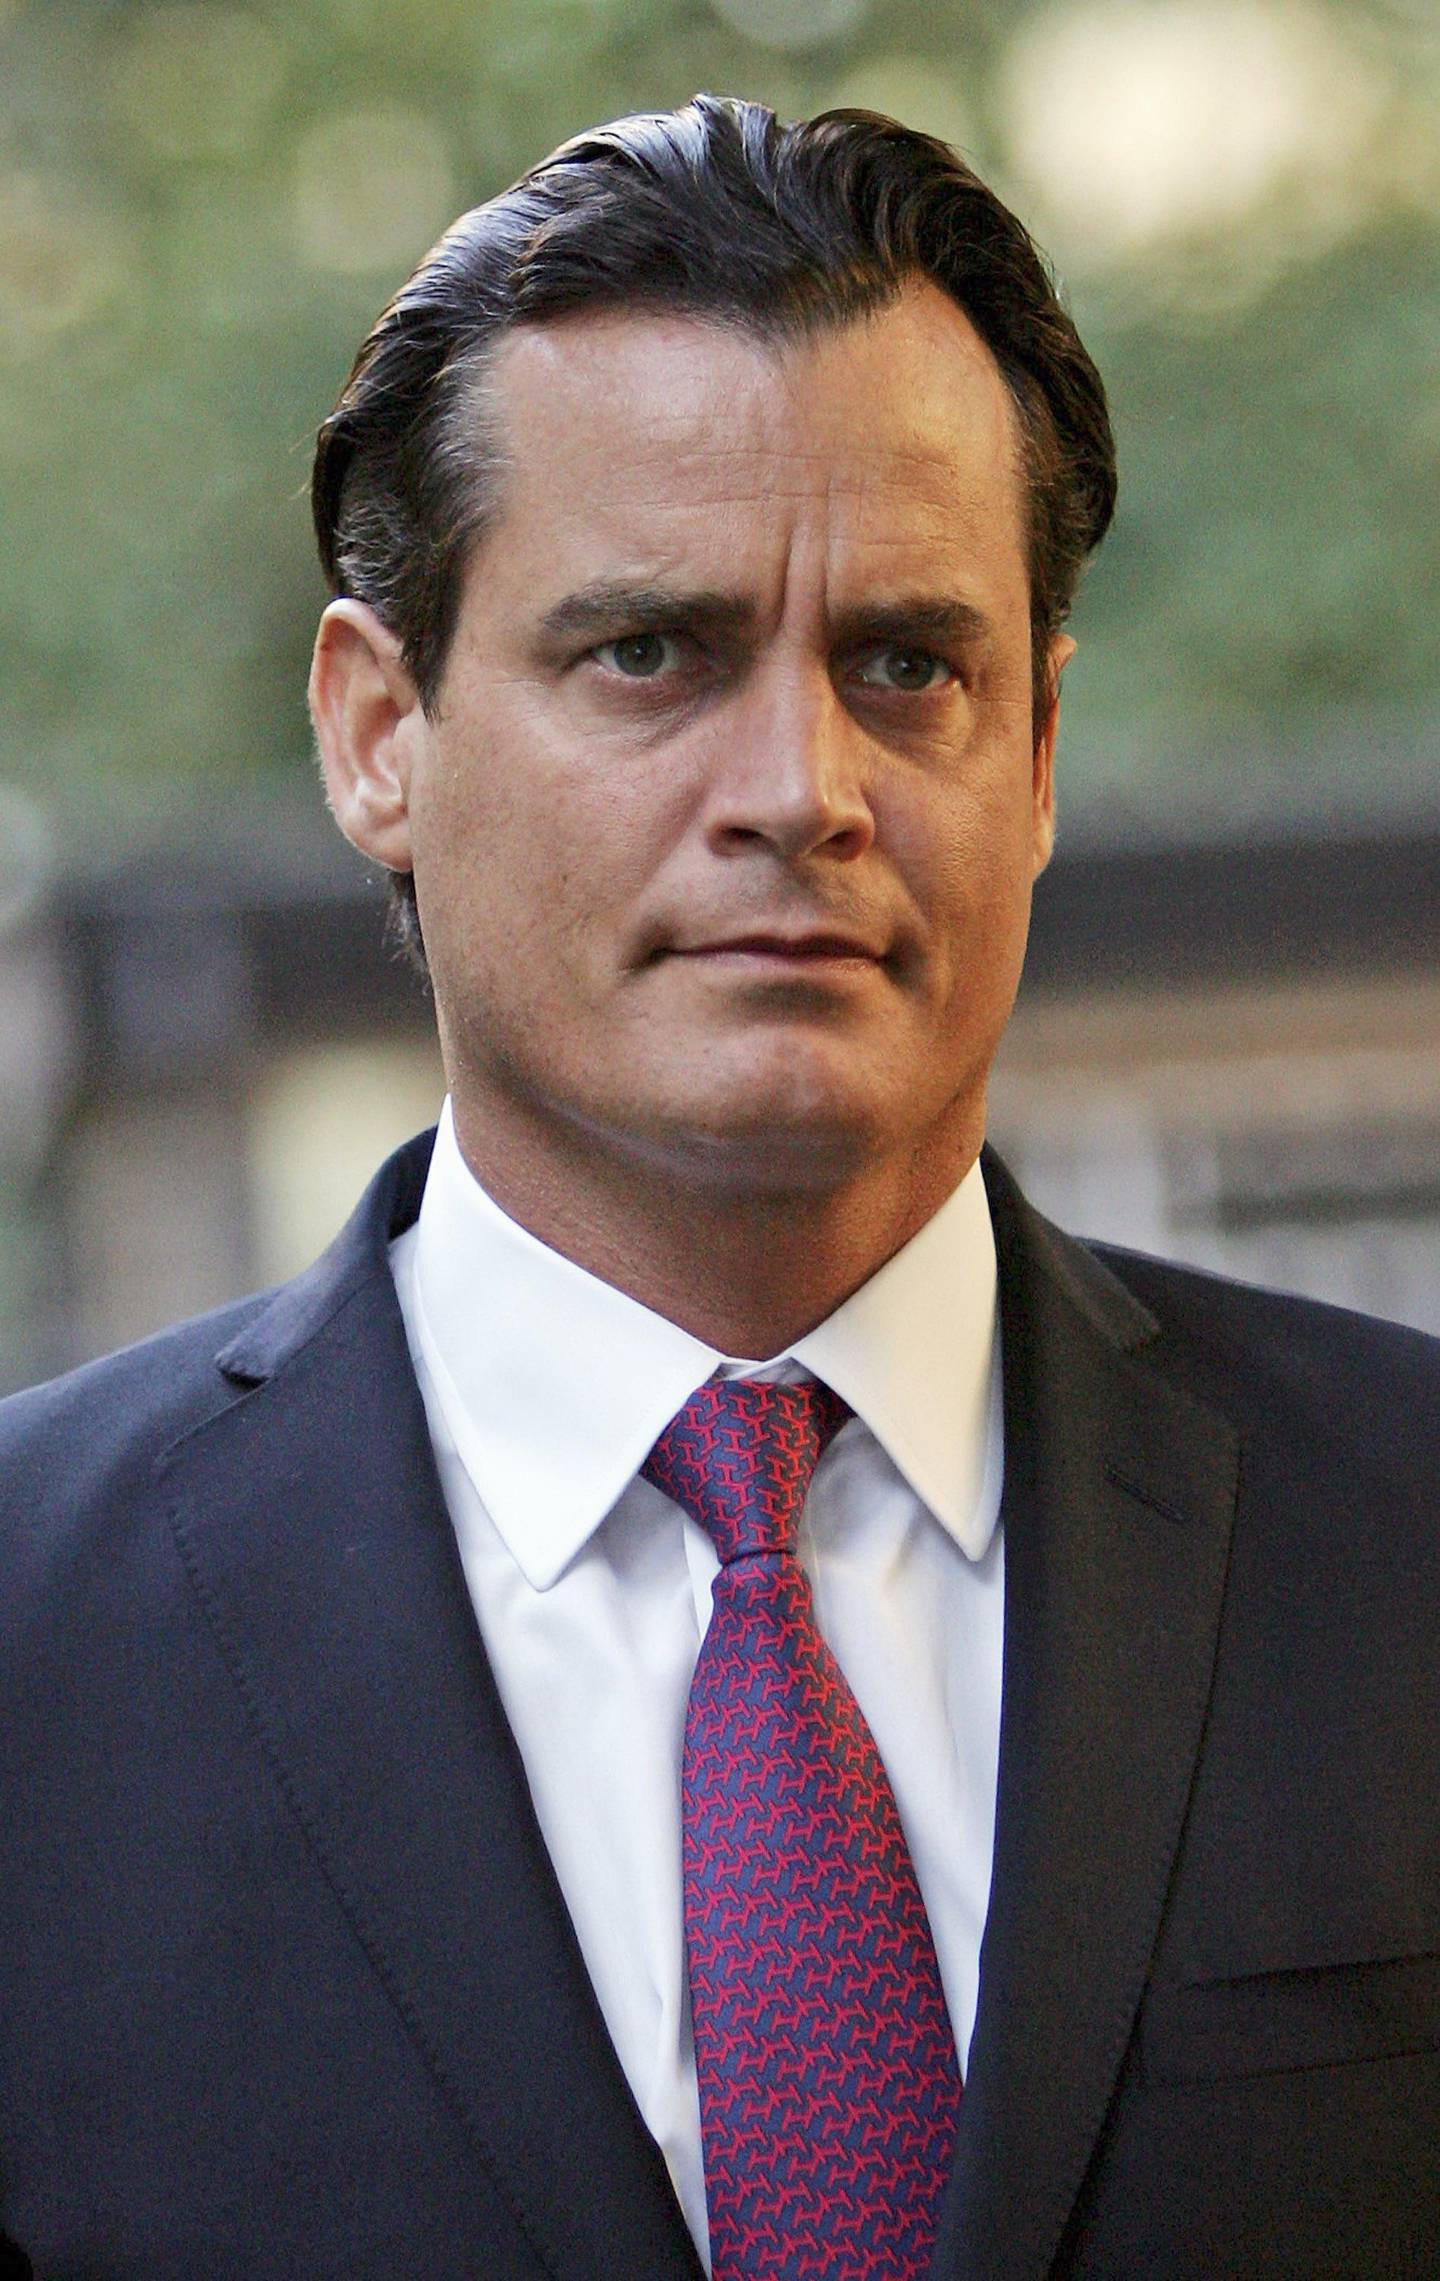 FILE - US Billionaire Matthew Mellon Dies Aged 54 LONDON - OCTOBER 20:  US businessman Matthew Mellon arrives at Southwark Crown Court on October 20, 2006 in London, England. Mellon, the estranged husband of Jimmy Choo creative director Tamara, has been charged in connection with an investigation into an alleged phone-tapping and computer hacking gang. He  faces a single charge of conspiring to cause unauthorised modification of computer material.  (Photo by Scott Barbour/Getty Images)